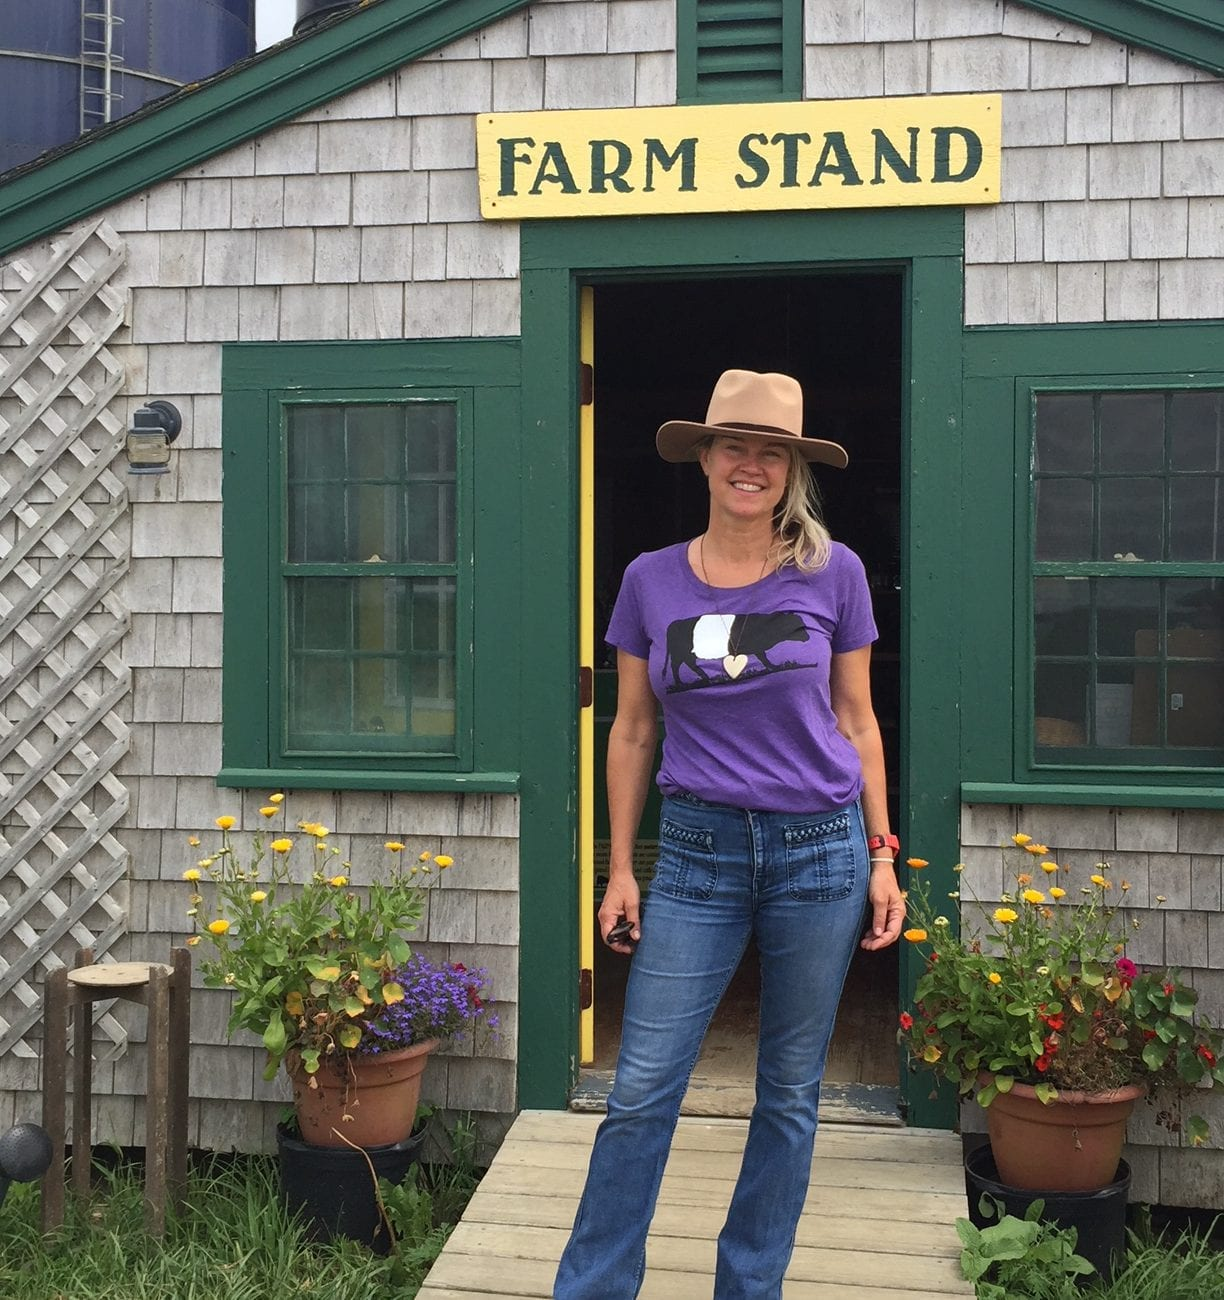 The Farm Institute Meals In The Meadows - Eunice Youmans, the General Manager for the Trustees on Martha's Vineyard